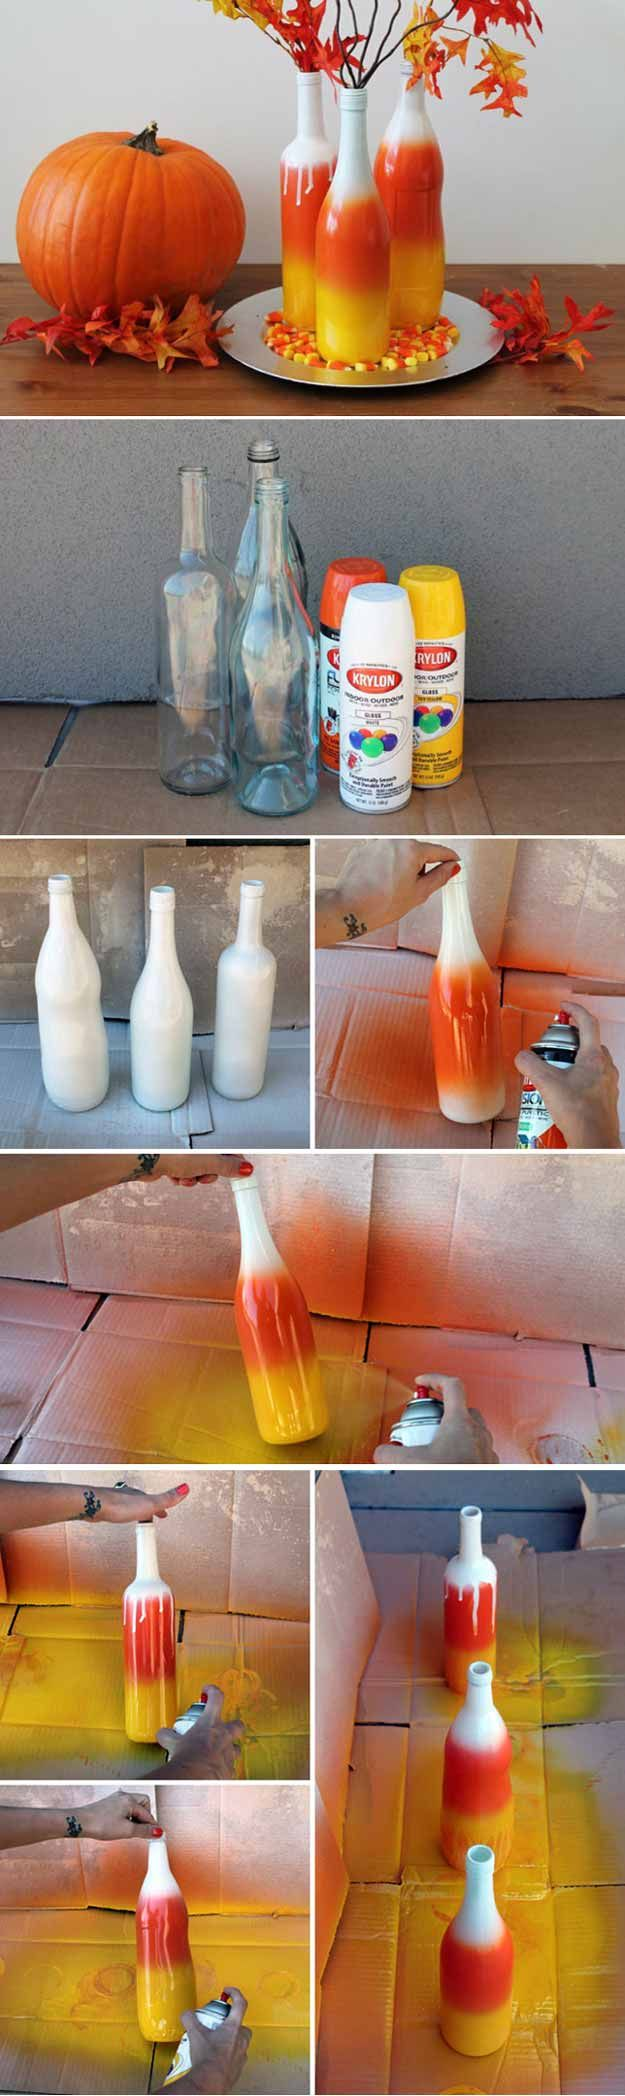 Ombre Wine Bottles | 15 Fall Decor DIY Projects